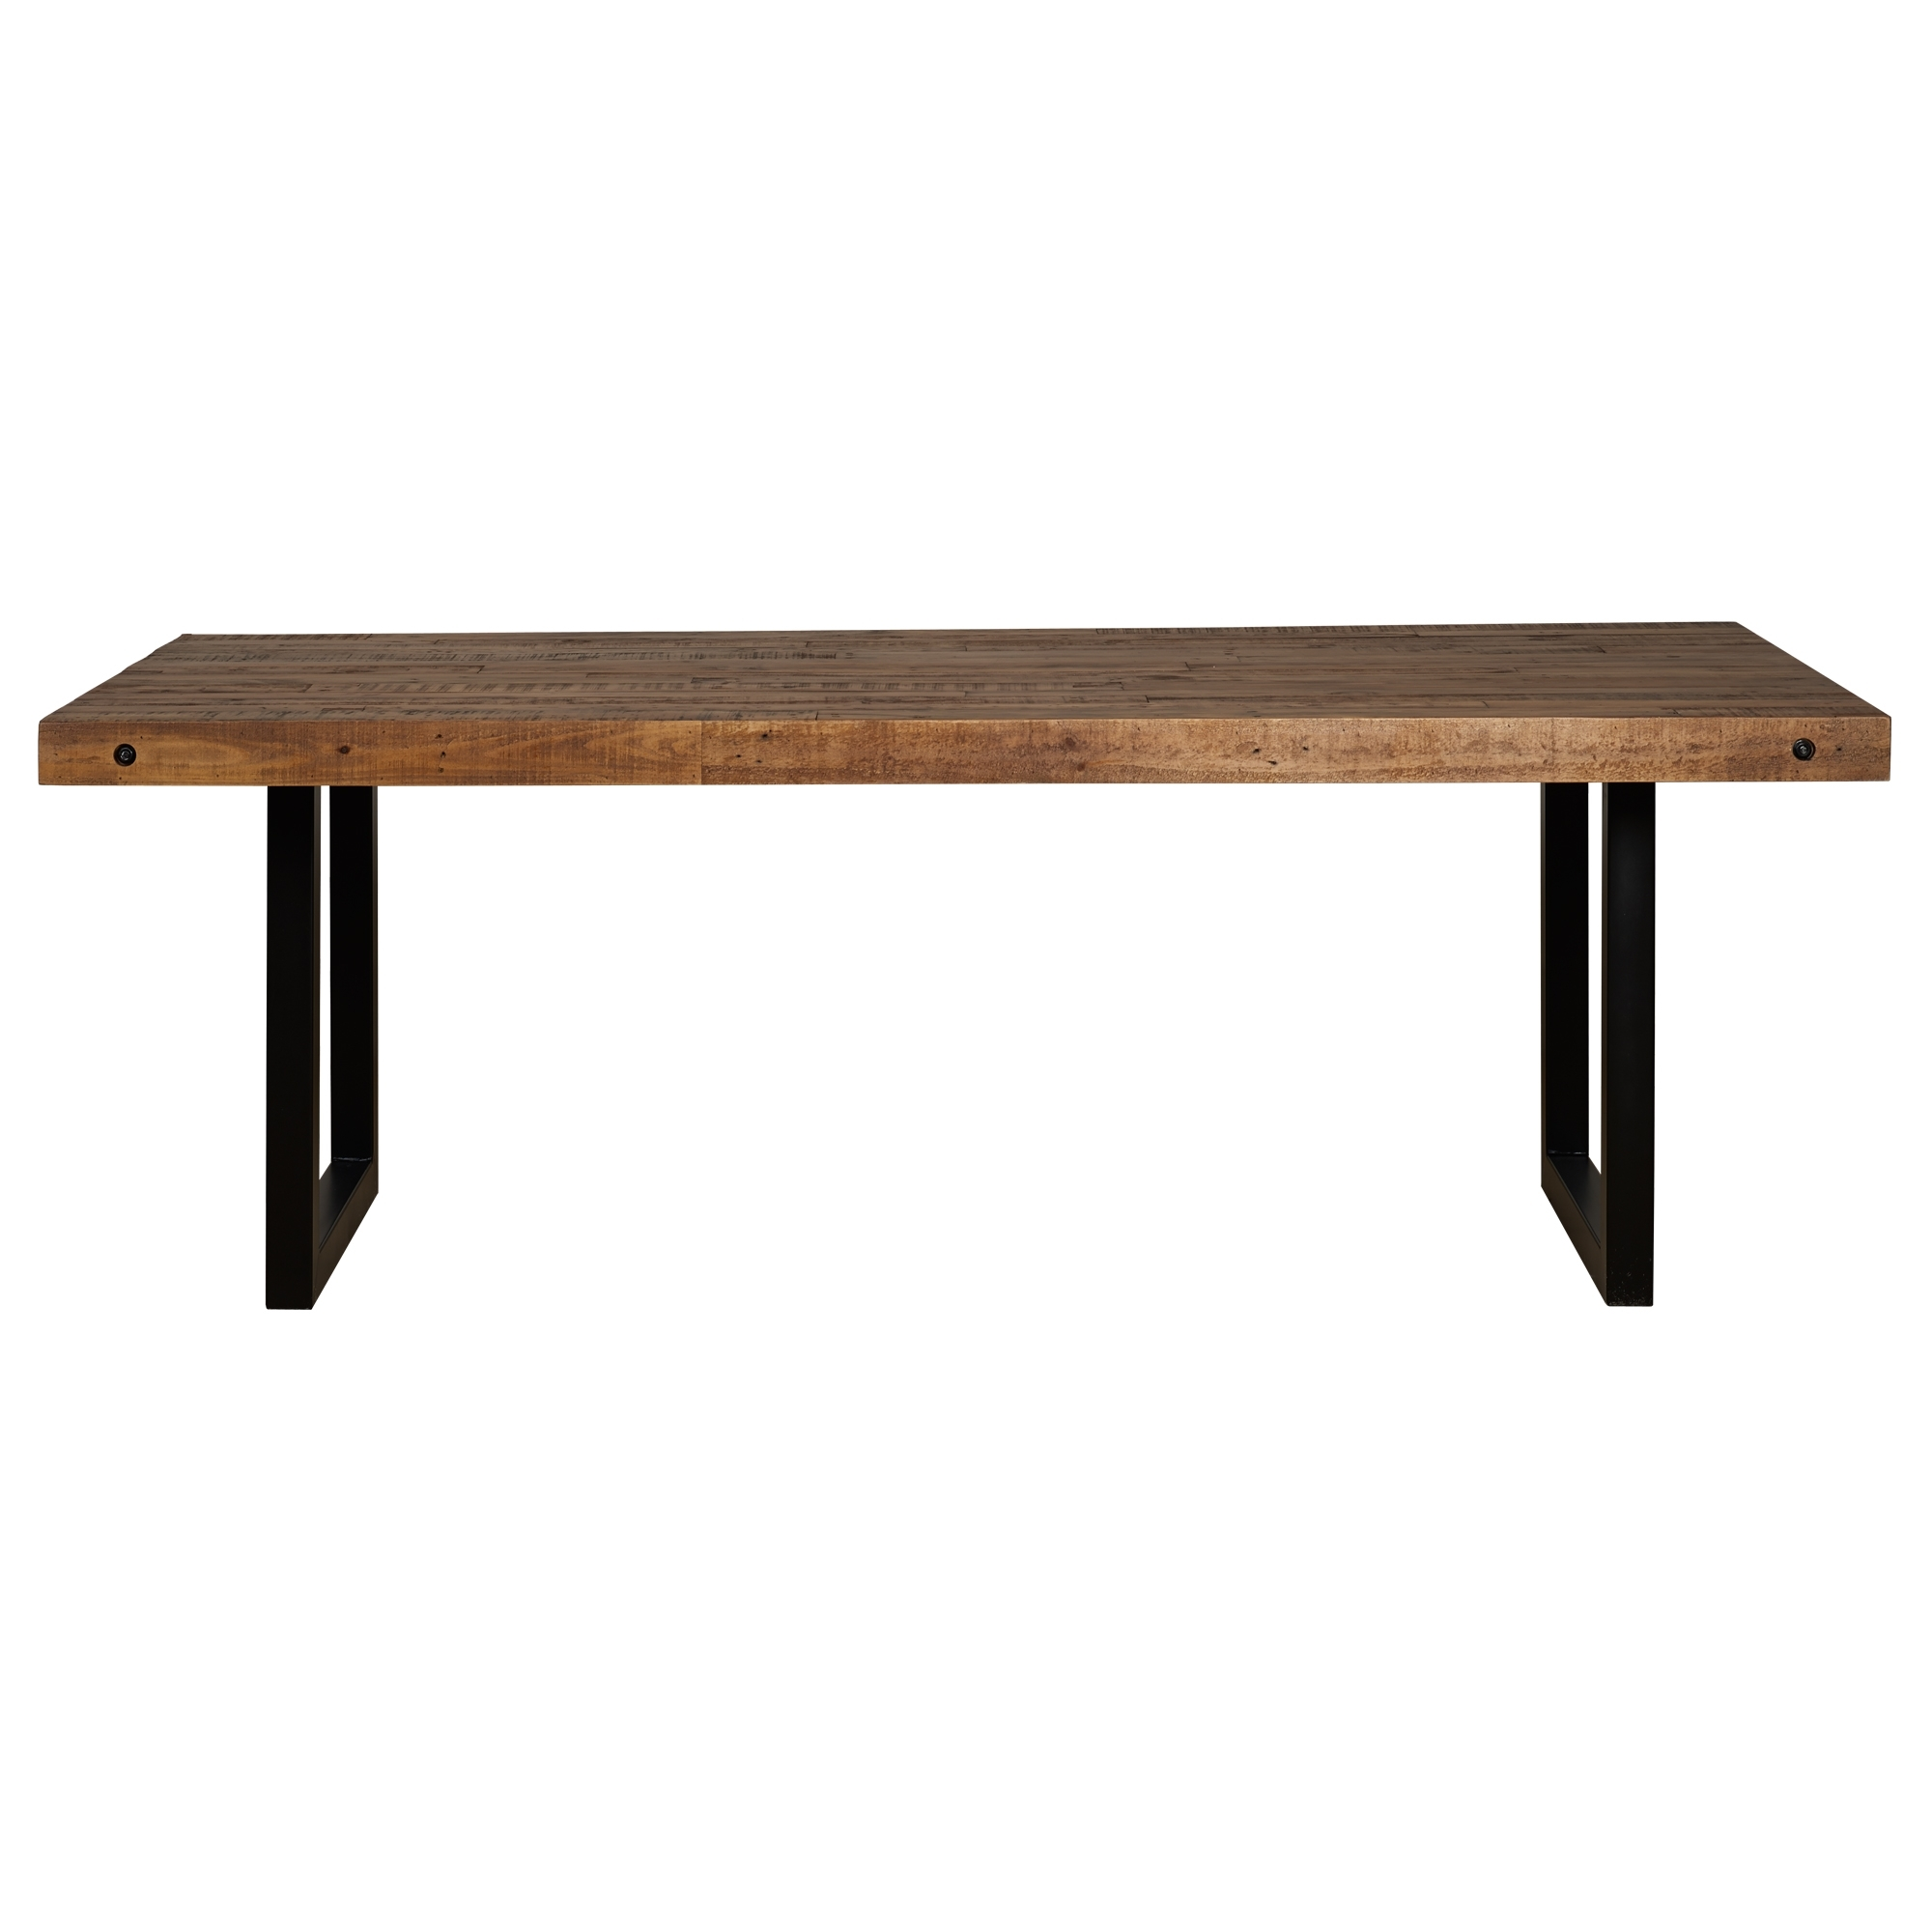 Preferred New York Dining Tables Inside New York Dining Collection – Mark Webster Designs (View 20 of 25)